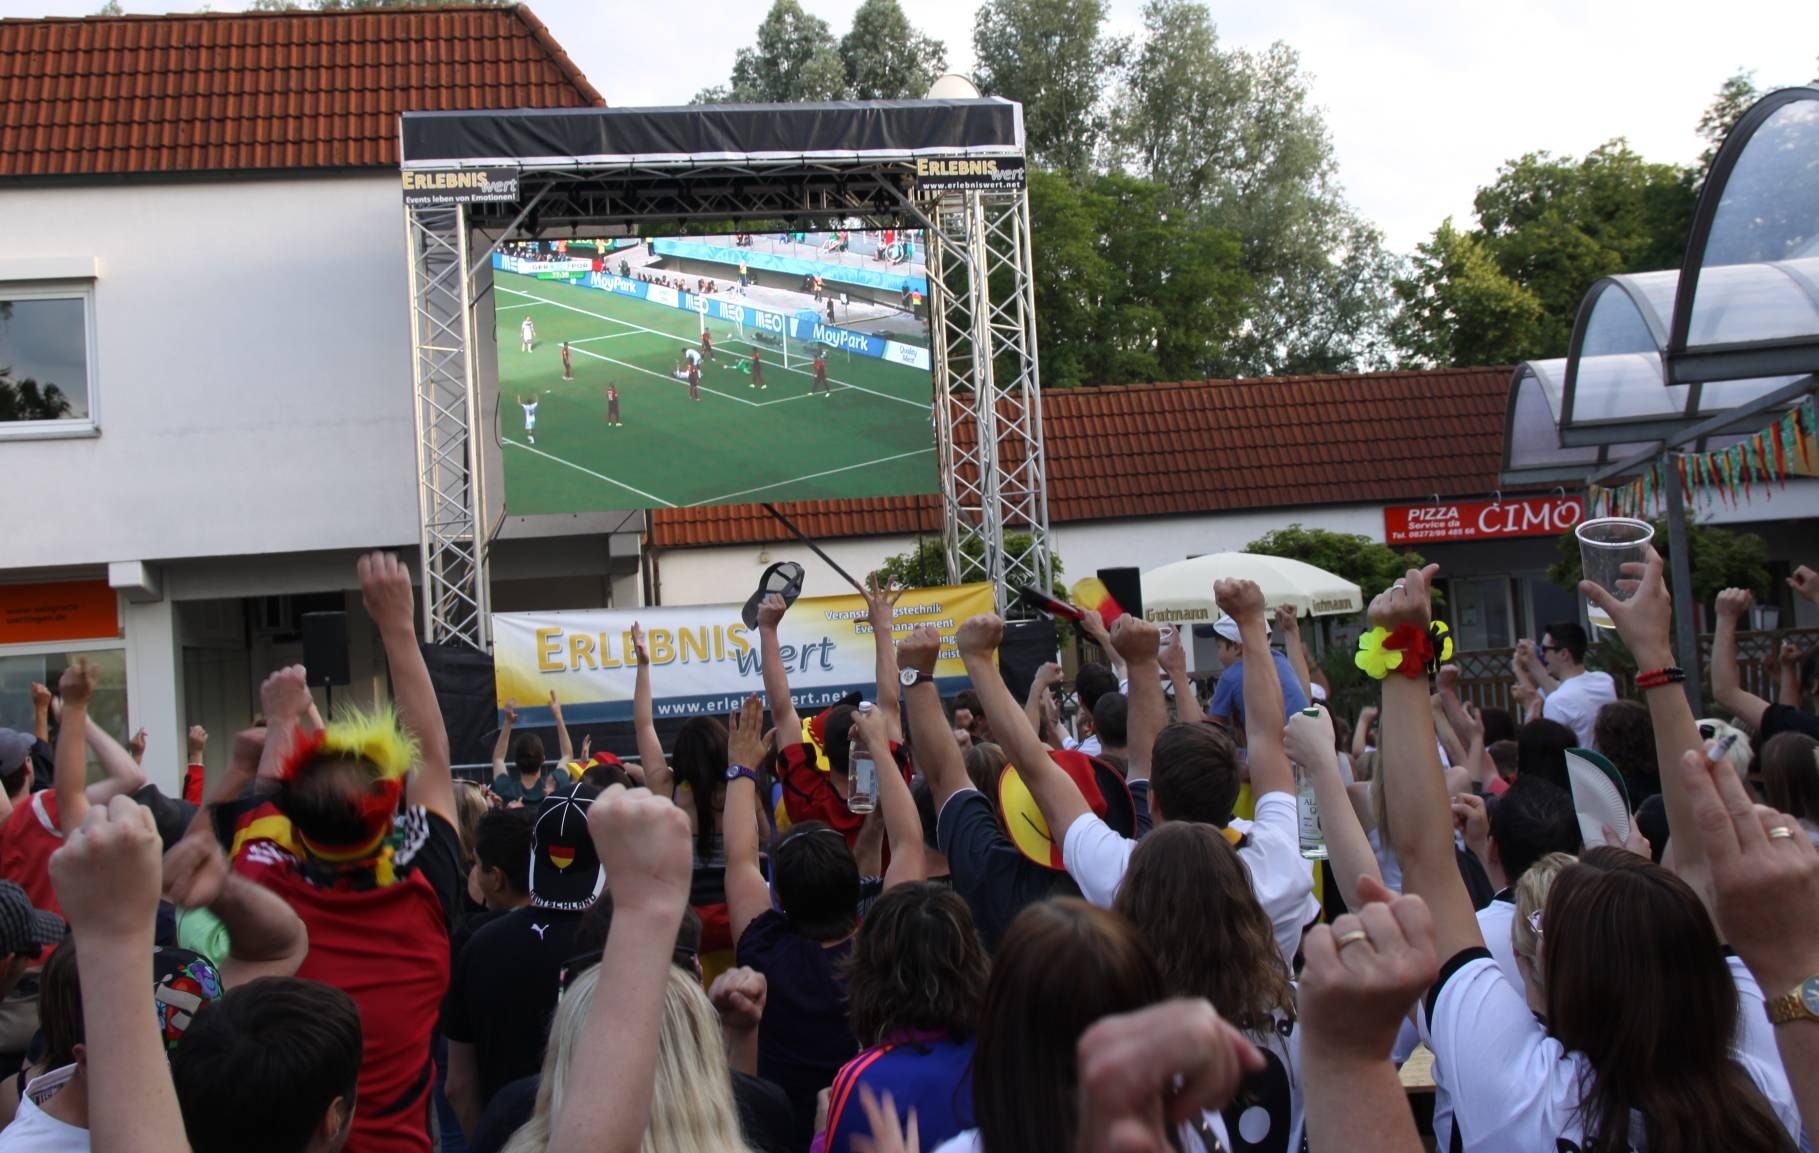 Sportveranstaltung; LED-Wand; Outdoor; Fanmeile; Public-Viewing; Event